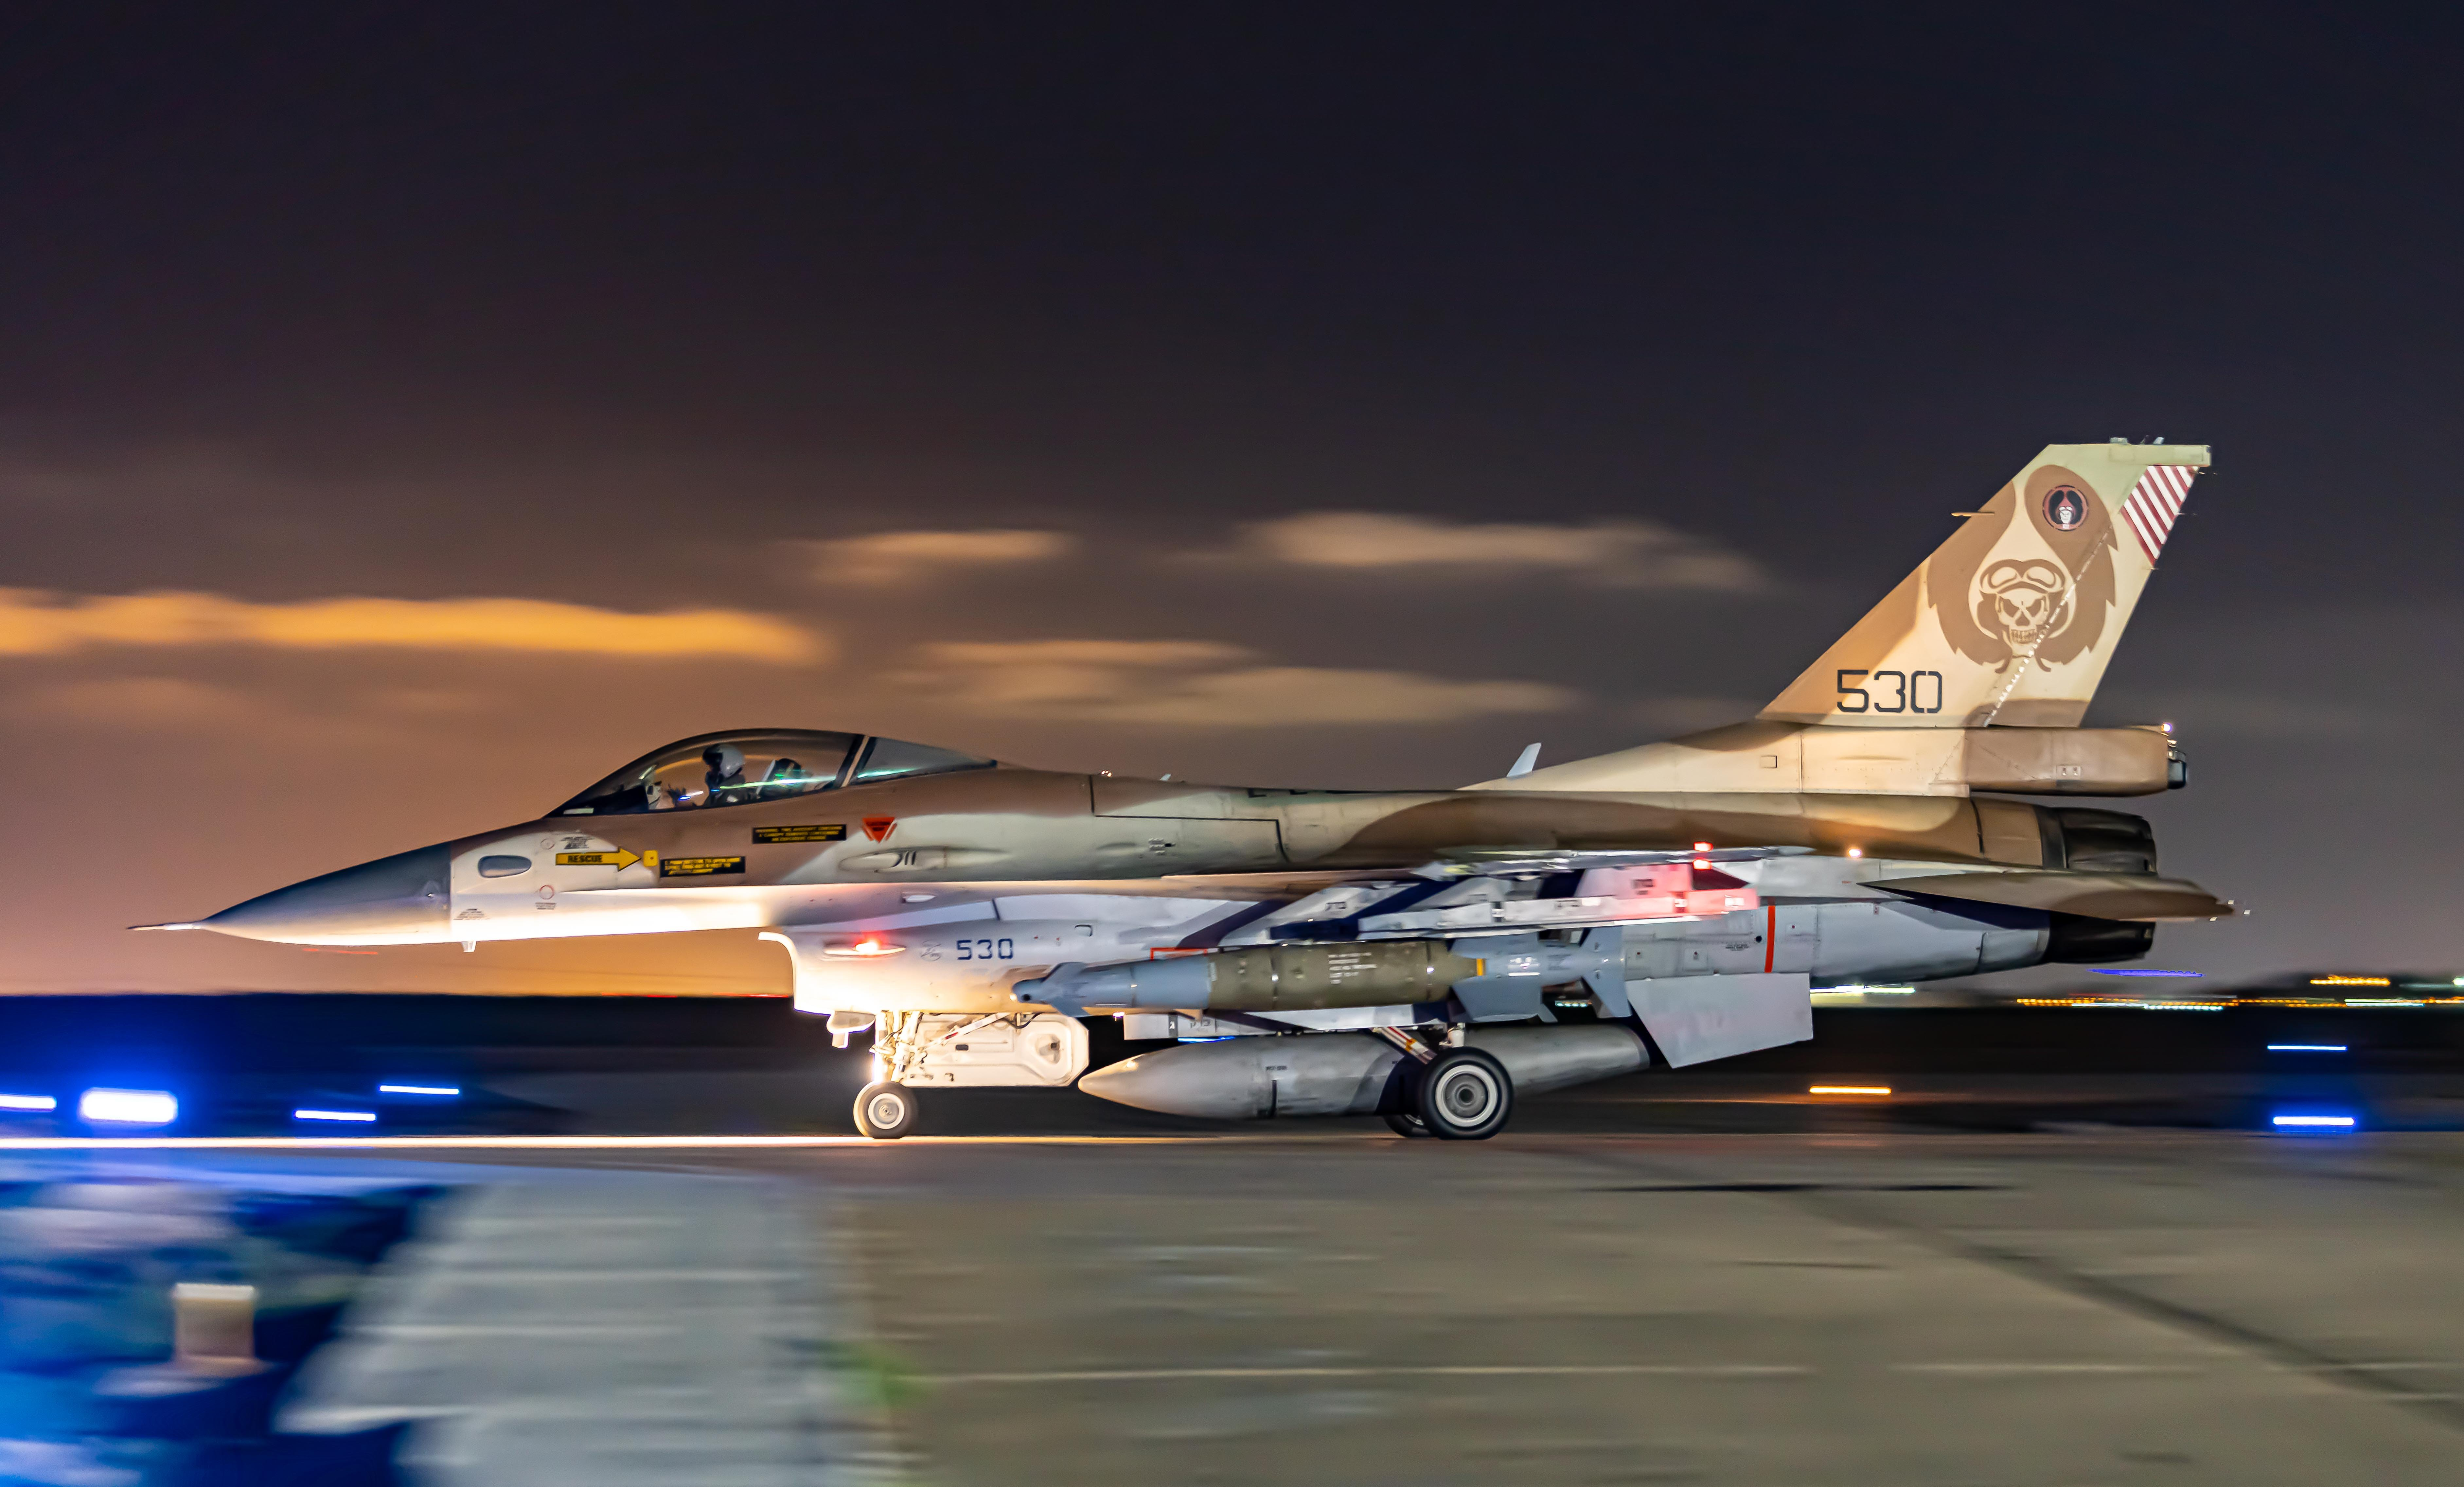 101st 'The First Fighter' Squadron F-16C Block 40 at Hatzor 18-05-21 [IAF/Amit Agronov]